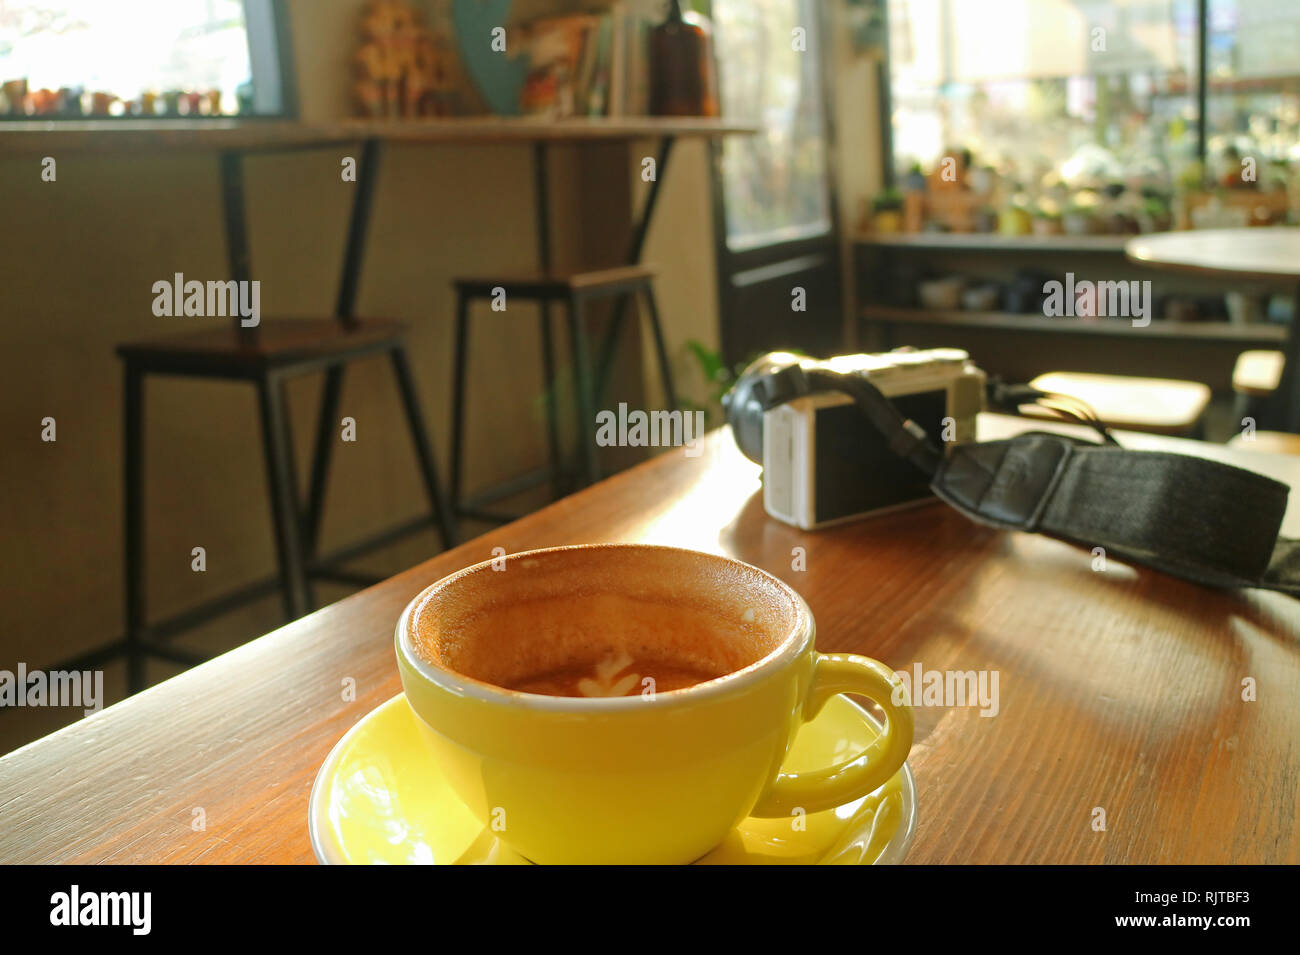 Half cup of cappuccino coffee on a wooden table with a white camera during break time - Stock Image